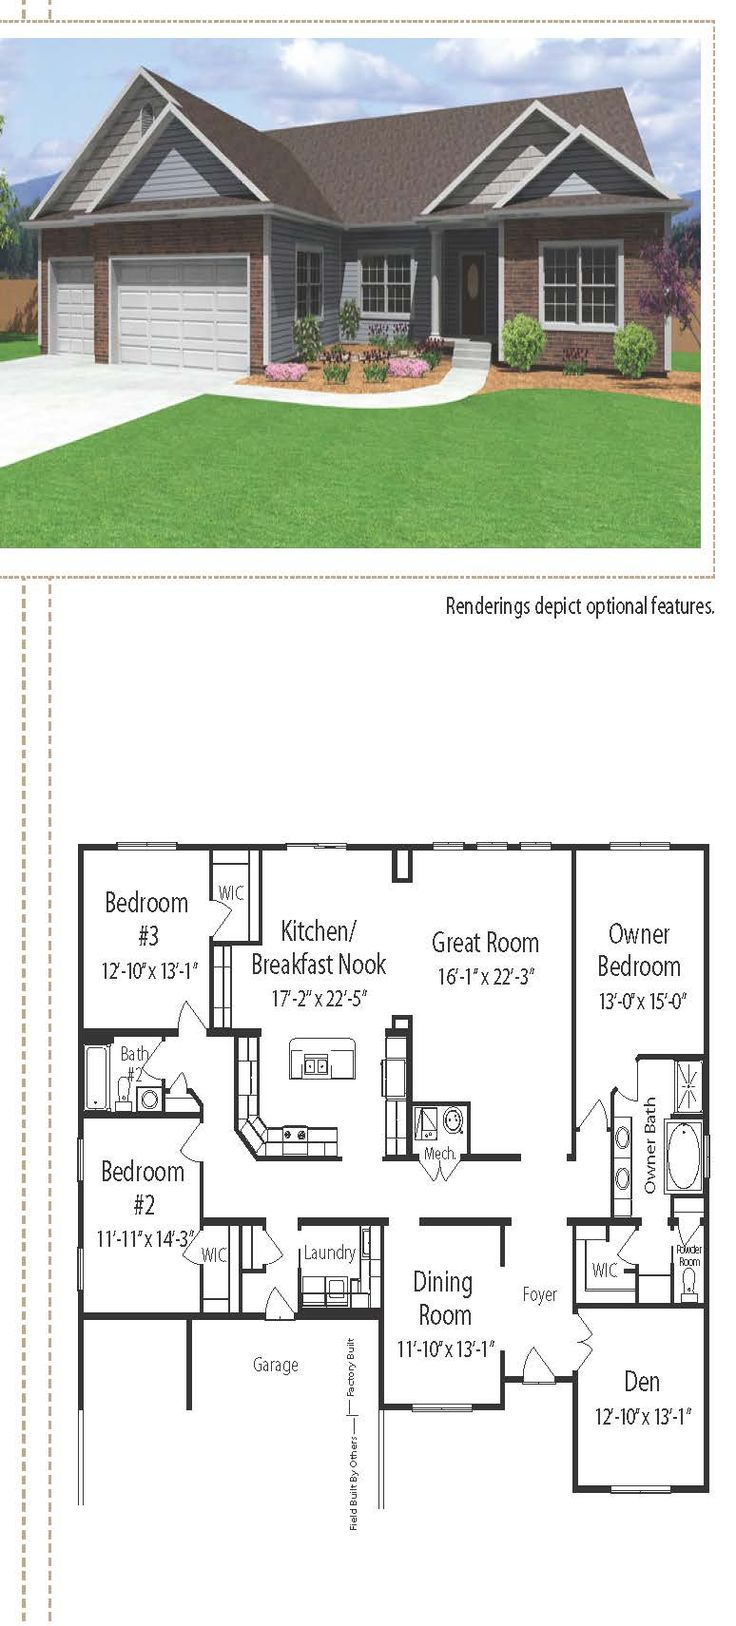 33 best the generations ranch home plan collection images on simple suburban ranch style home 2522 square feet this home includes two separate staggered garages the floor plan includes the great room and the